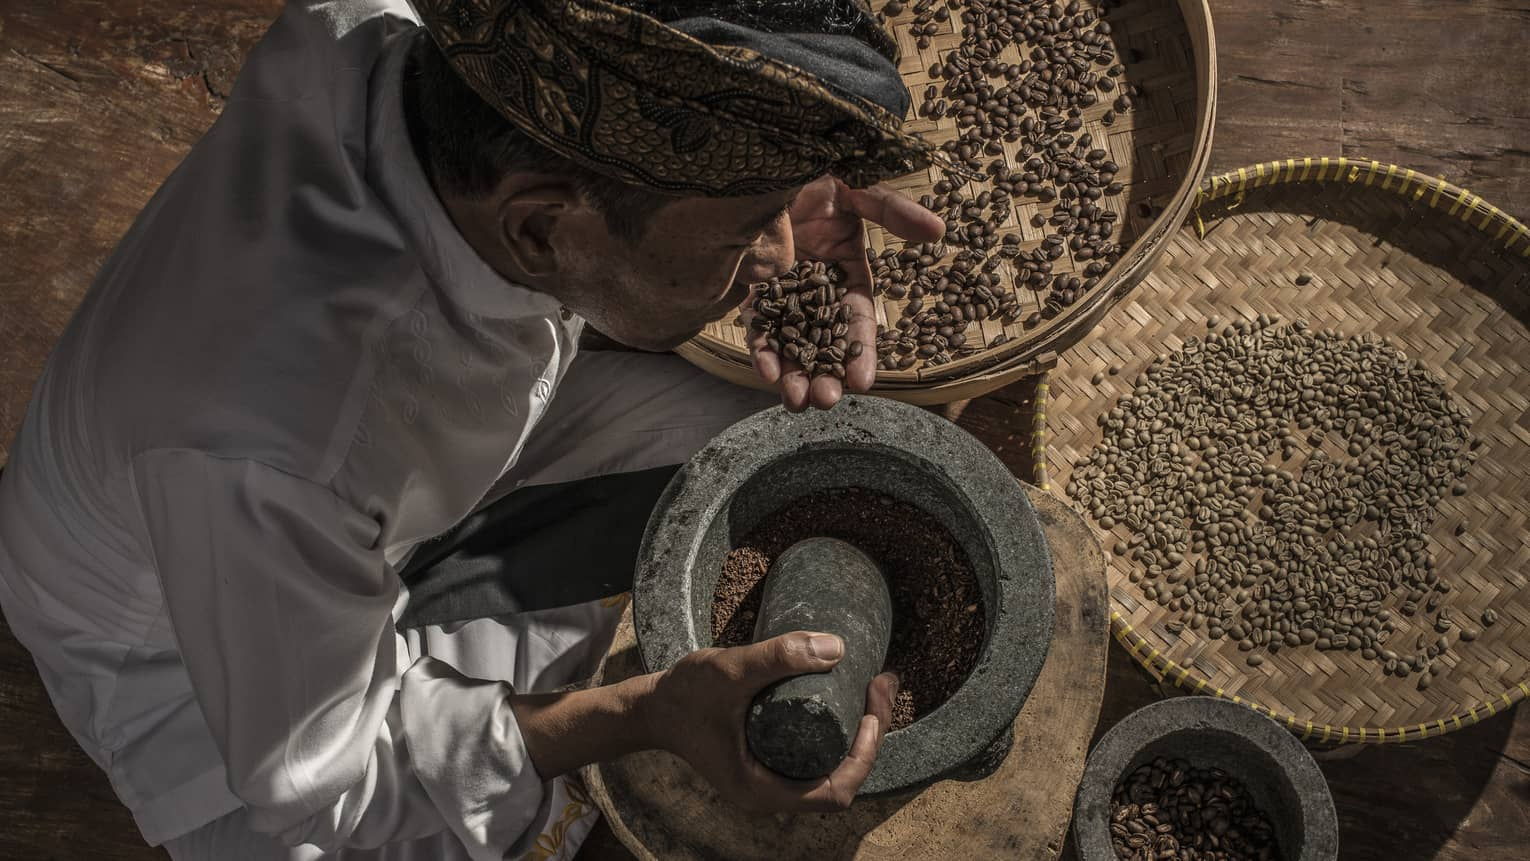 A coffee grower with coffee beans in a large mortar and pestle at Four Seasons Bali and Jimbaran Bay